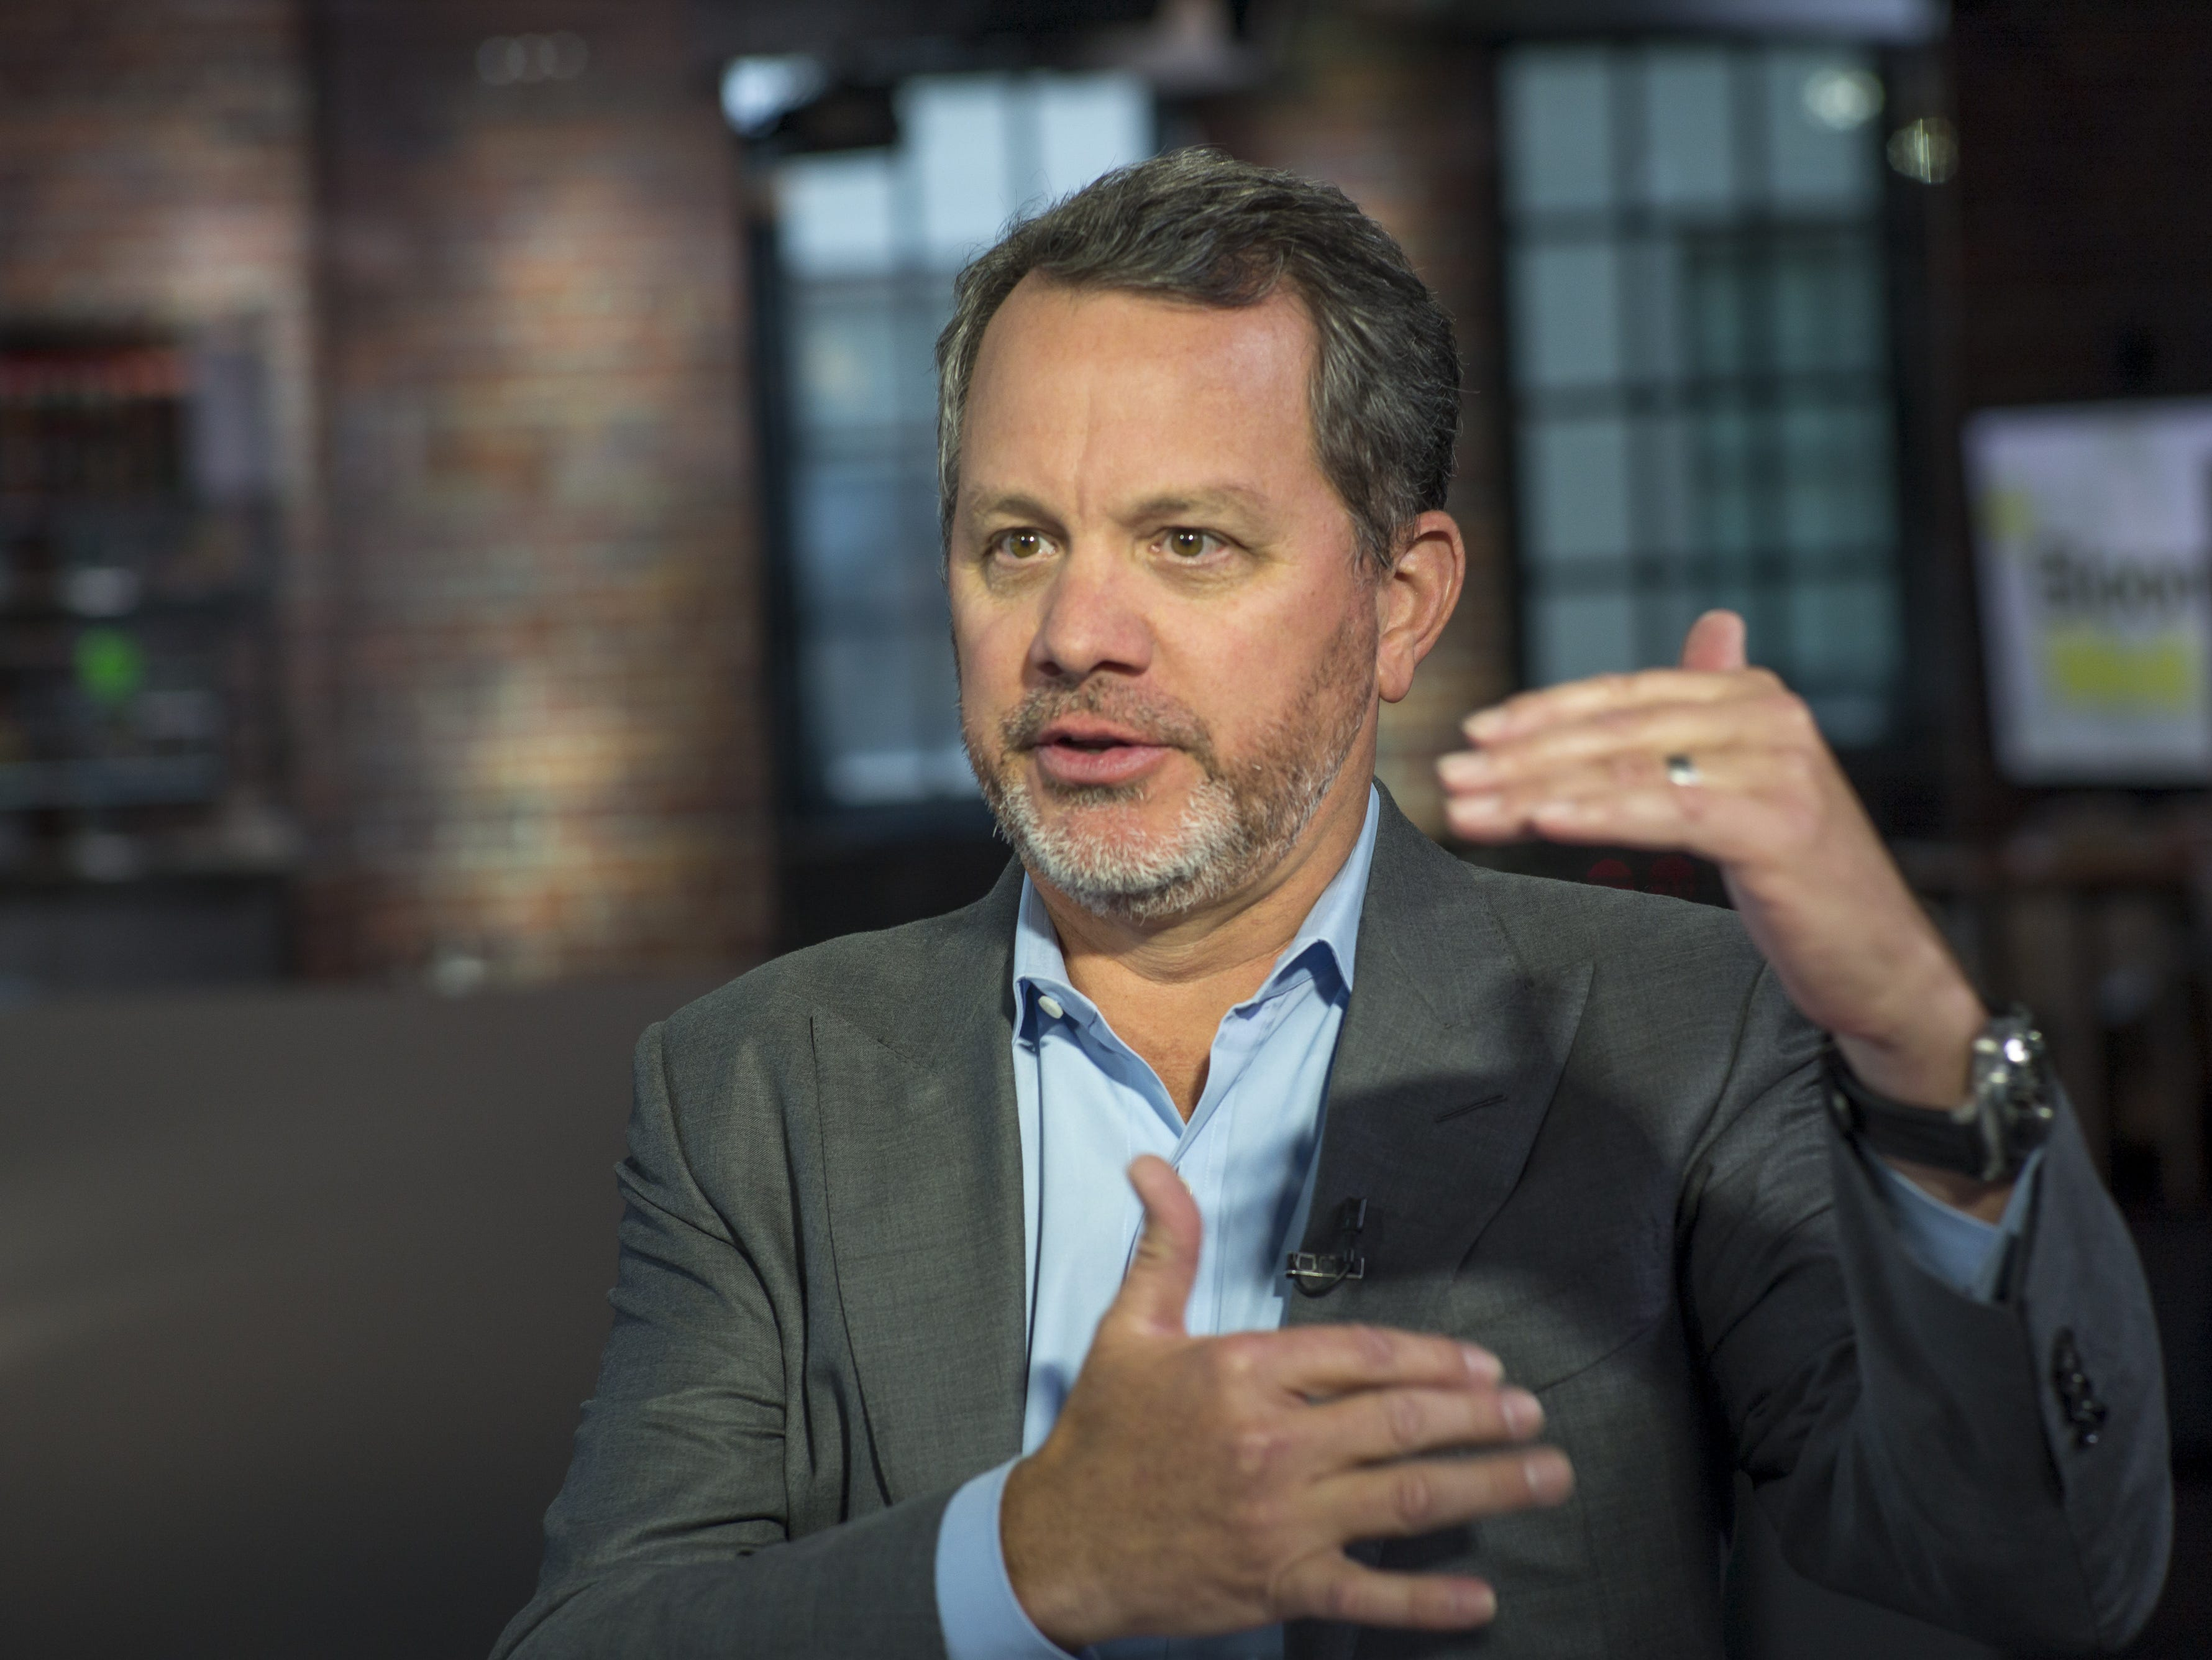 """William """"Bill"""" McGlashan, founder and managing partner of TPG Growth LLC, speaks during a Bloomberg West television interview in San Francisco, Calif., on Thursday, Aug. 18, 2016."""